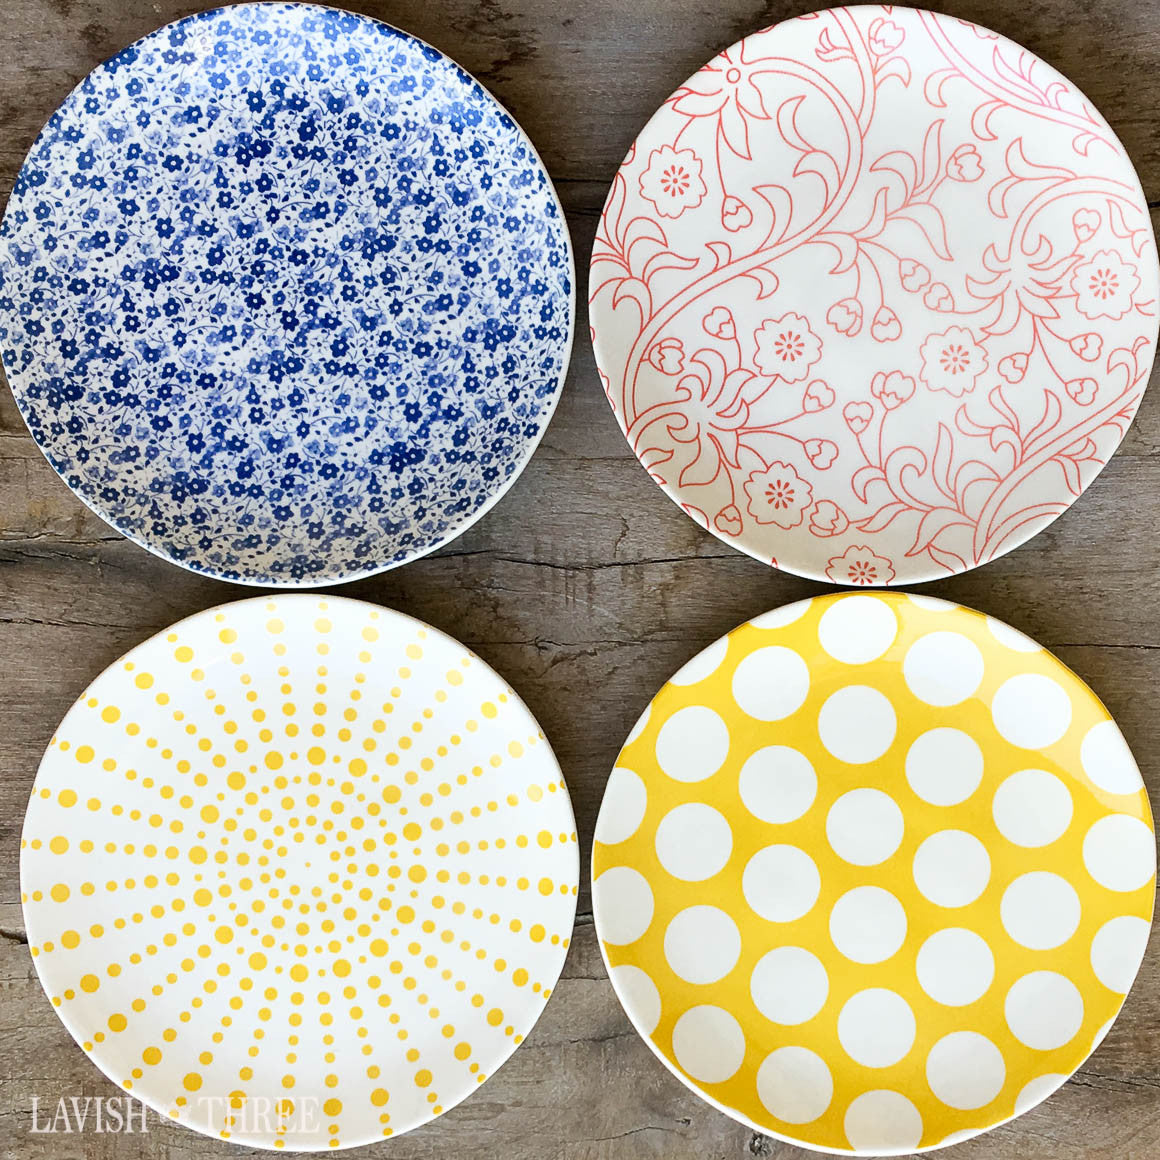 Eclectic farmhouse country style dessert salad side plate colorful pattern design lavish three 3